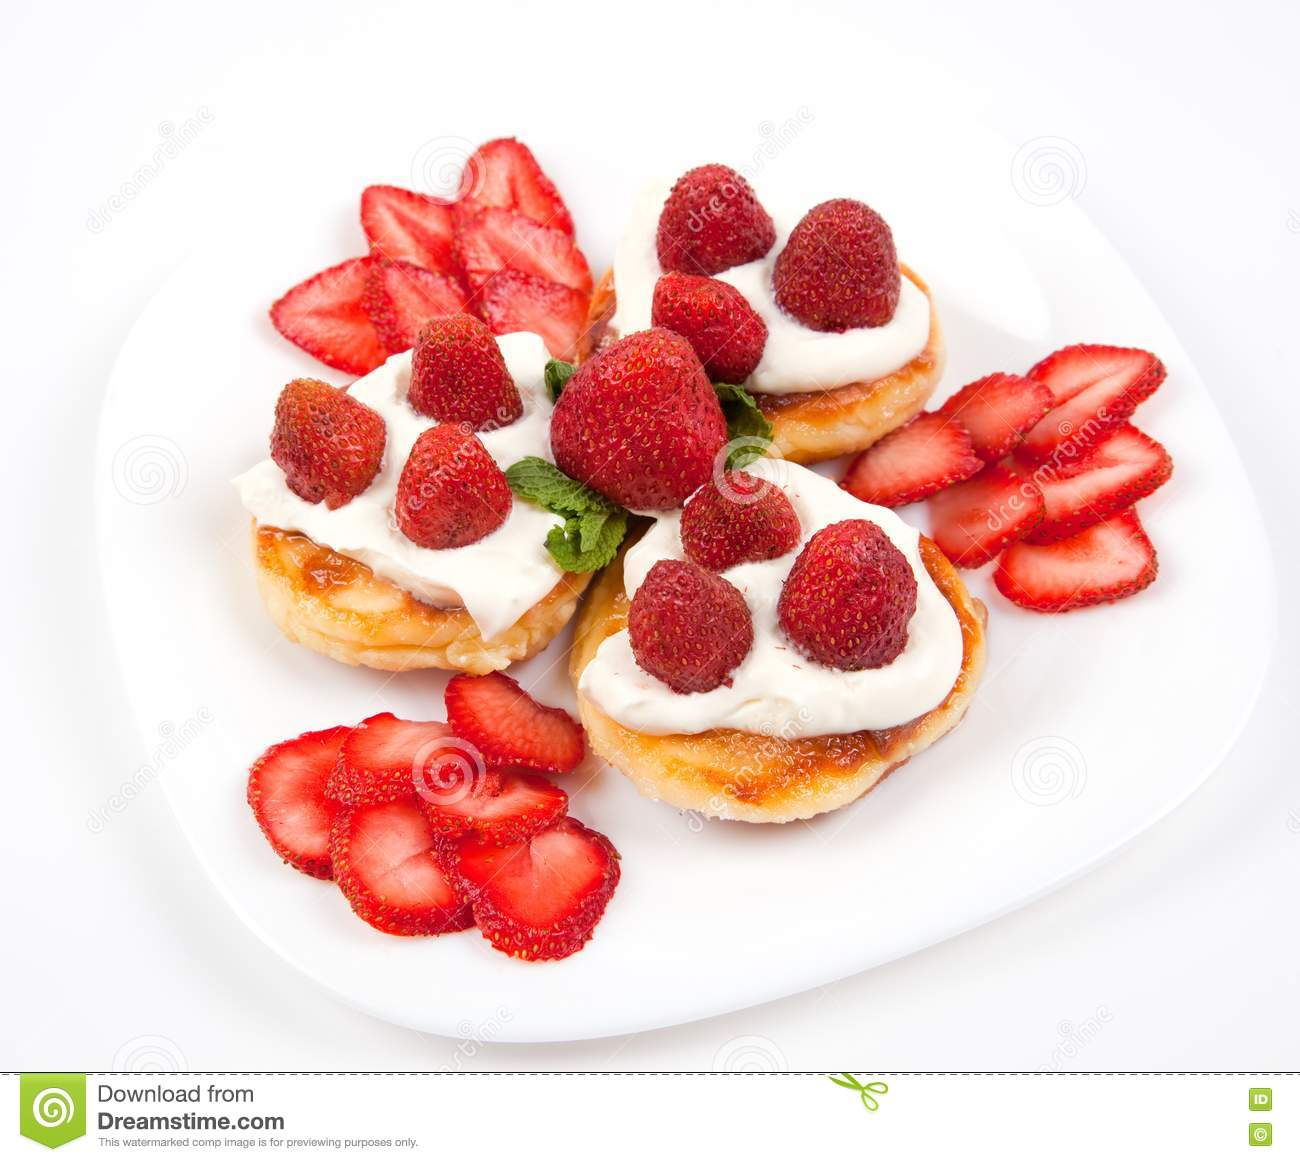 Pancakes With Strawberries And Cream Stock Images - Image: 20009434